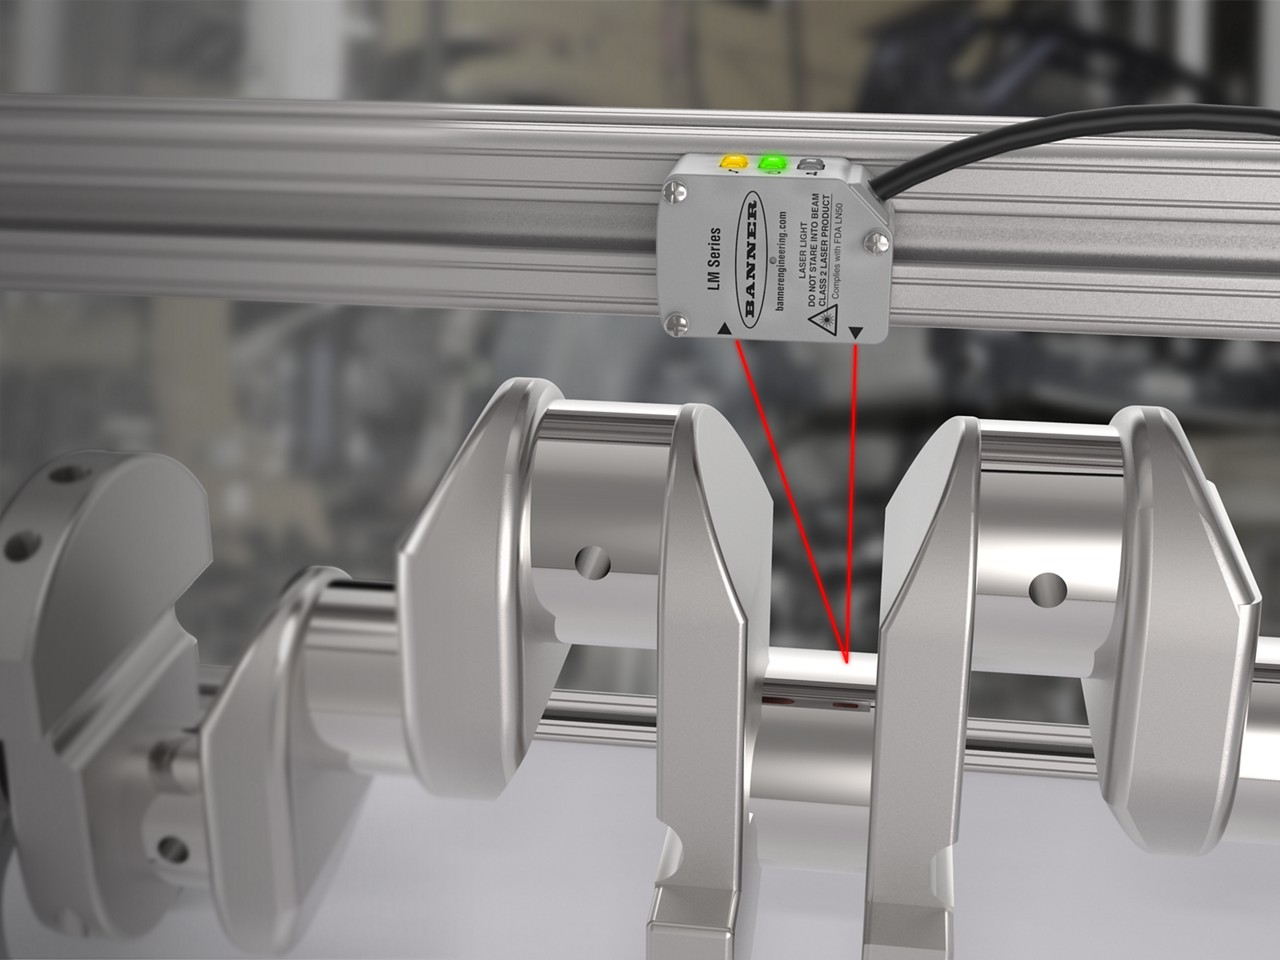 LM precision measurement sensor measures crankshaft runout